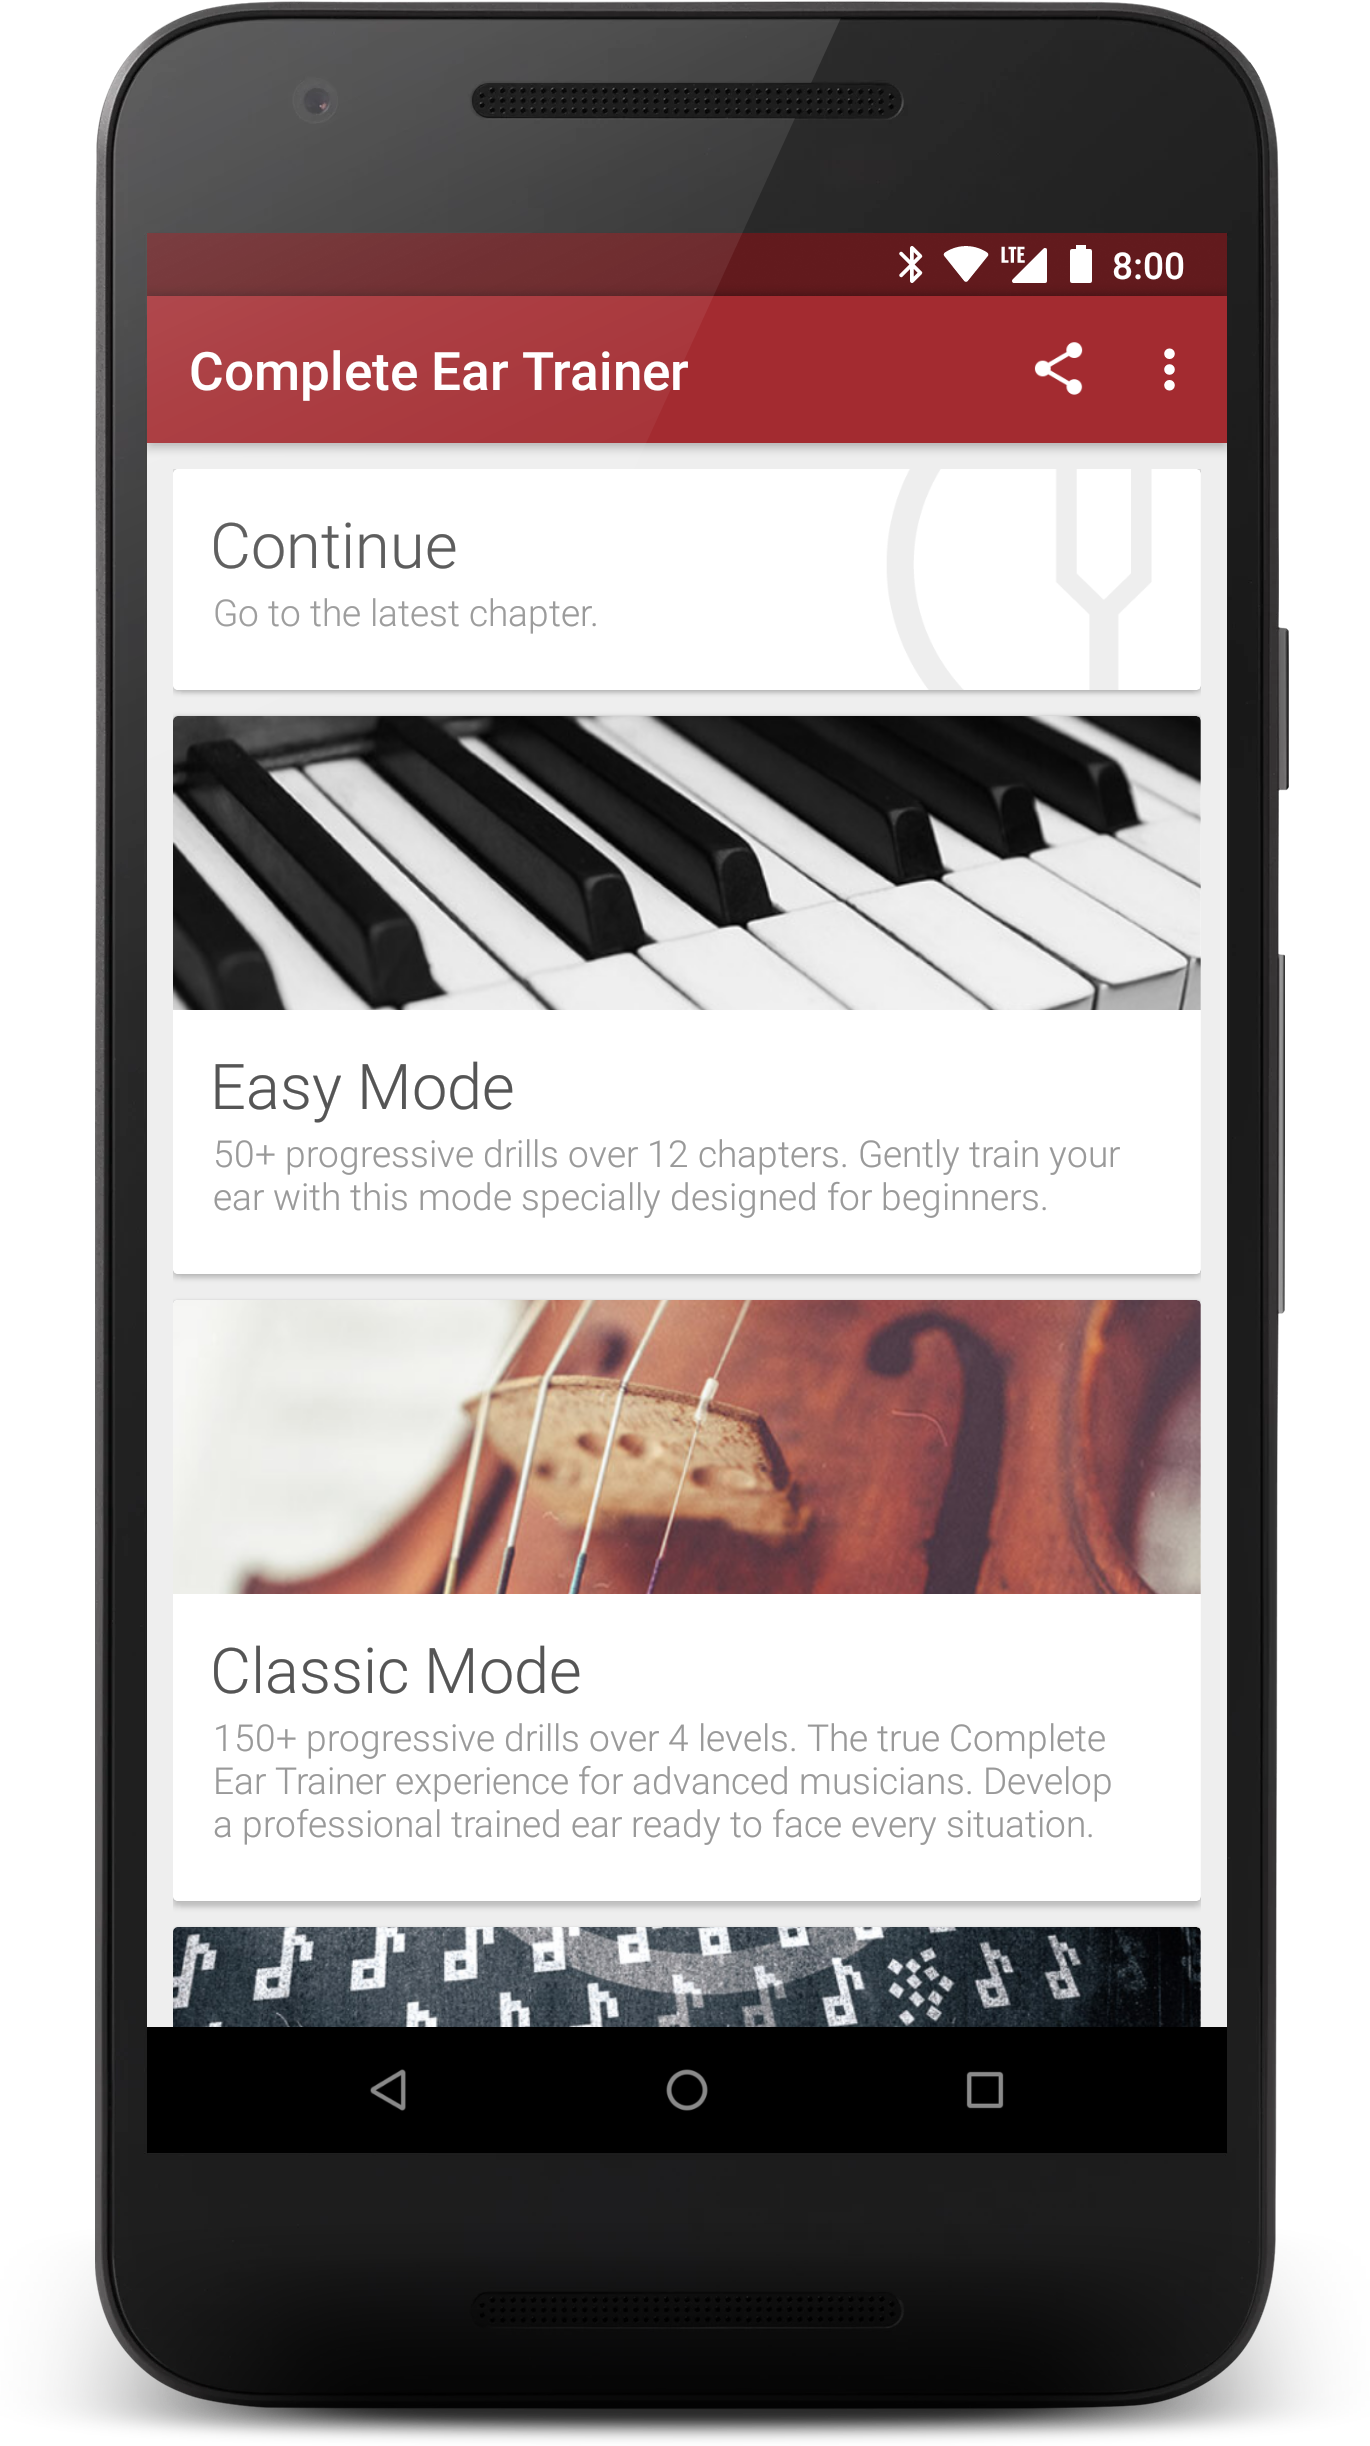 Complete Ear Trainer – The ultimate ear training app for musicians